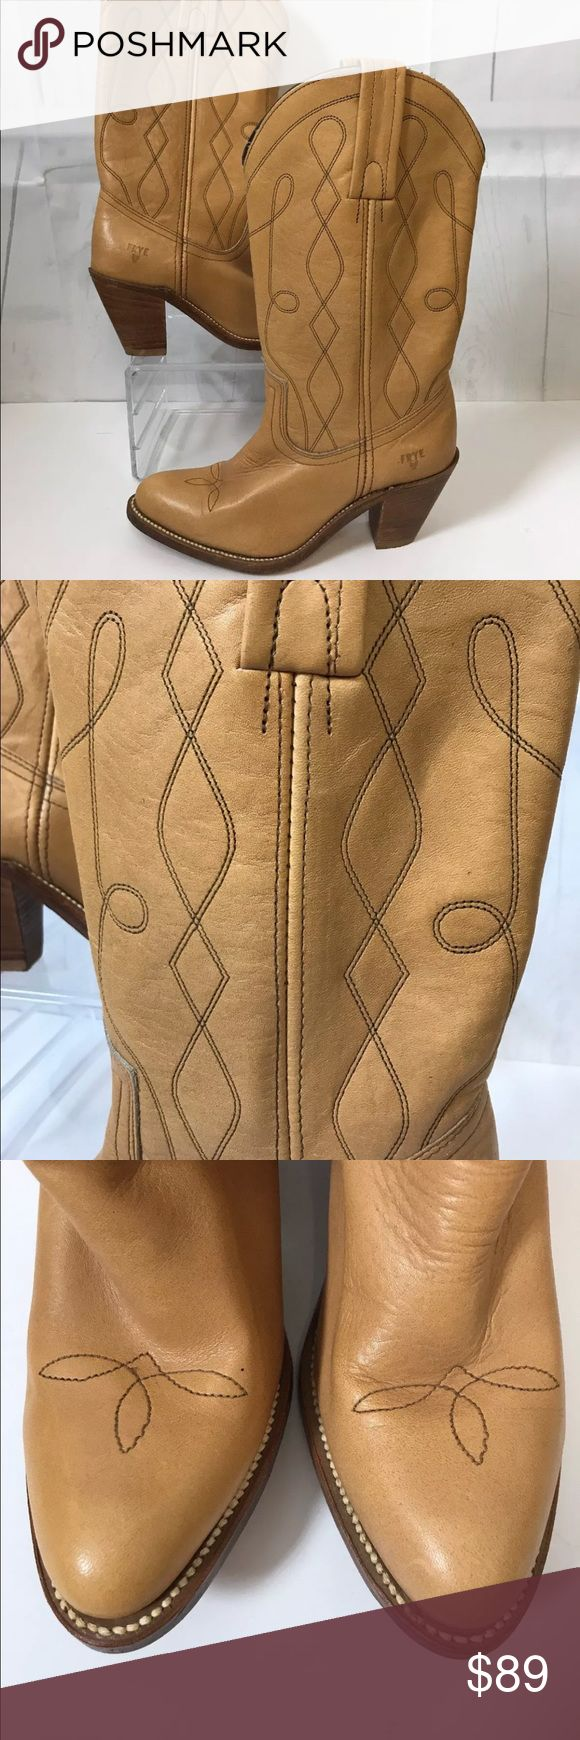 Frye cowgirl boots heel Boots don't look like they have been worn just a little shelf wear and they are missing the inserts  Same or next day shipping Frye Shoes